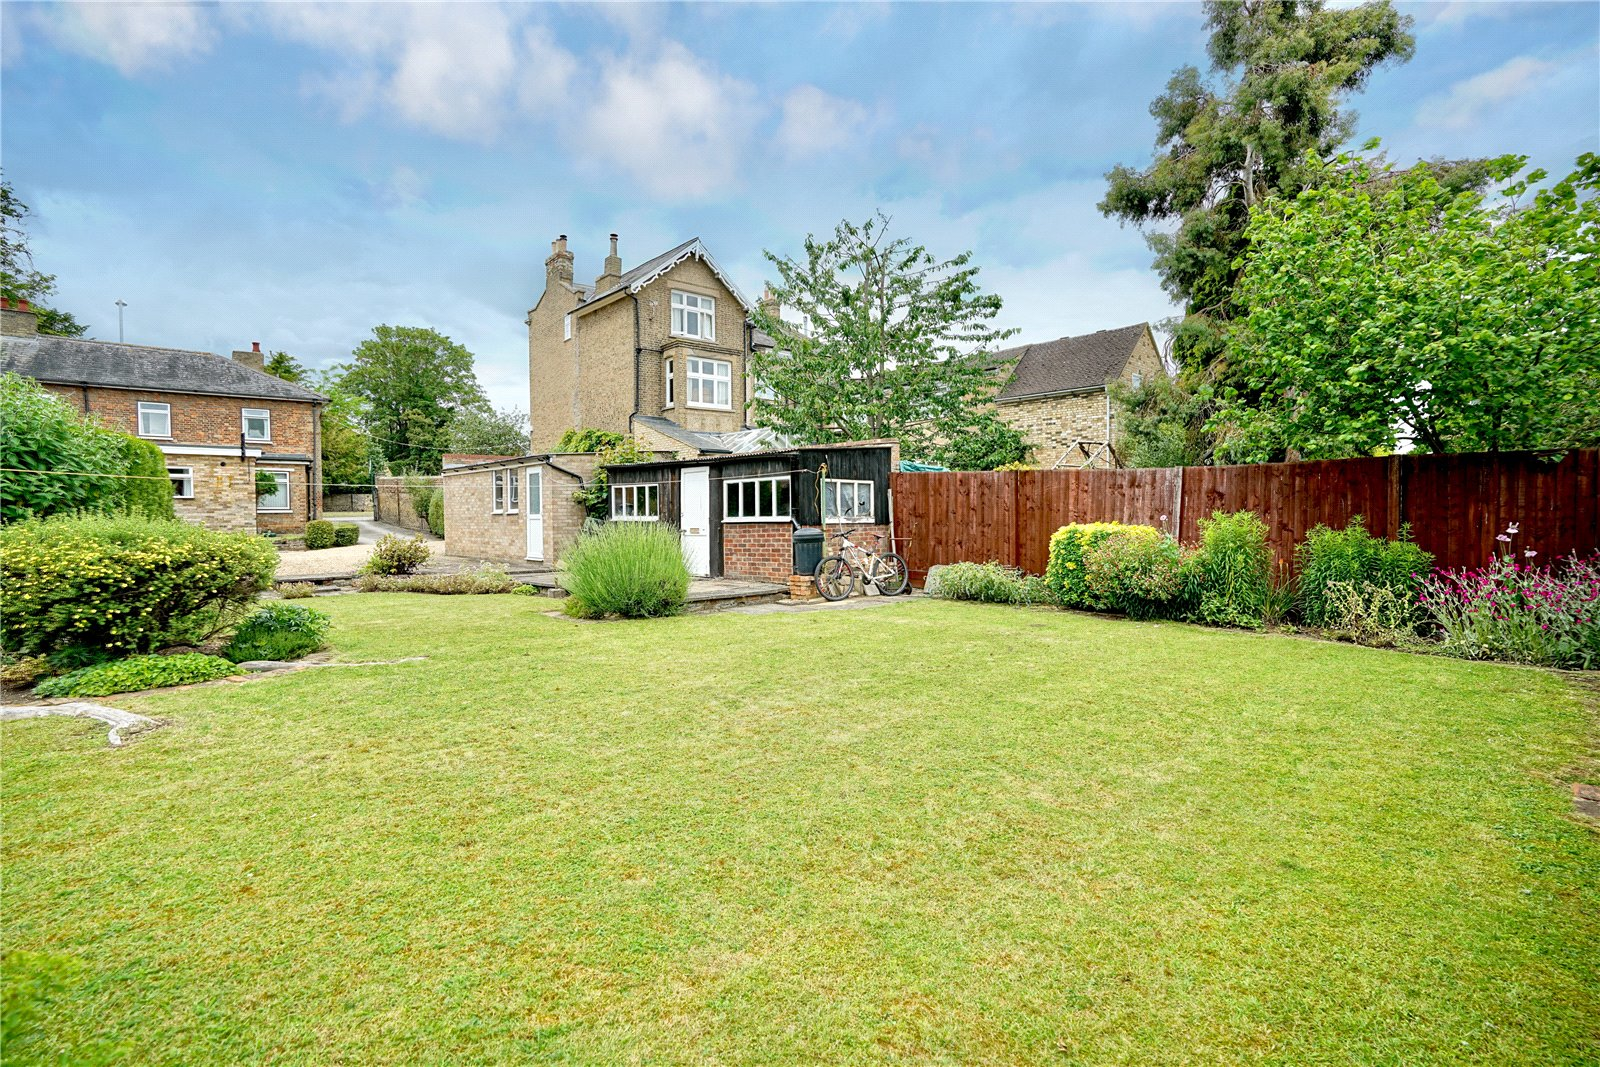 3 bed house for sale in Great North Road, Eaton Socon 1